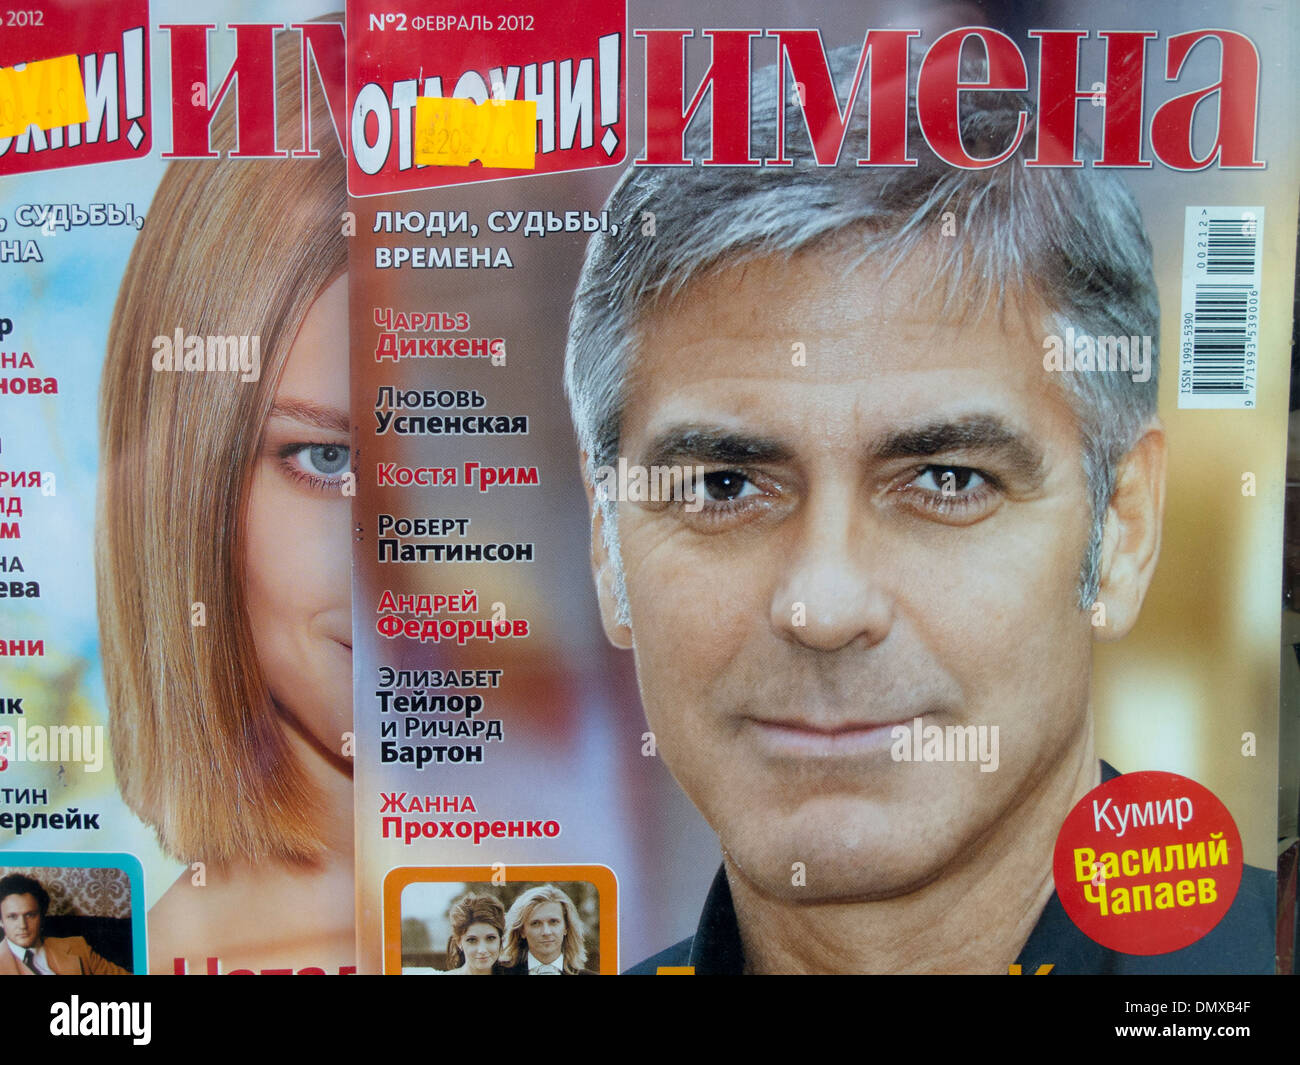 Hollywood movie star George Clooney appears on the cover of a glossy Russian magazine. - Stock Image